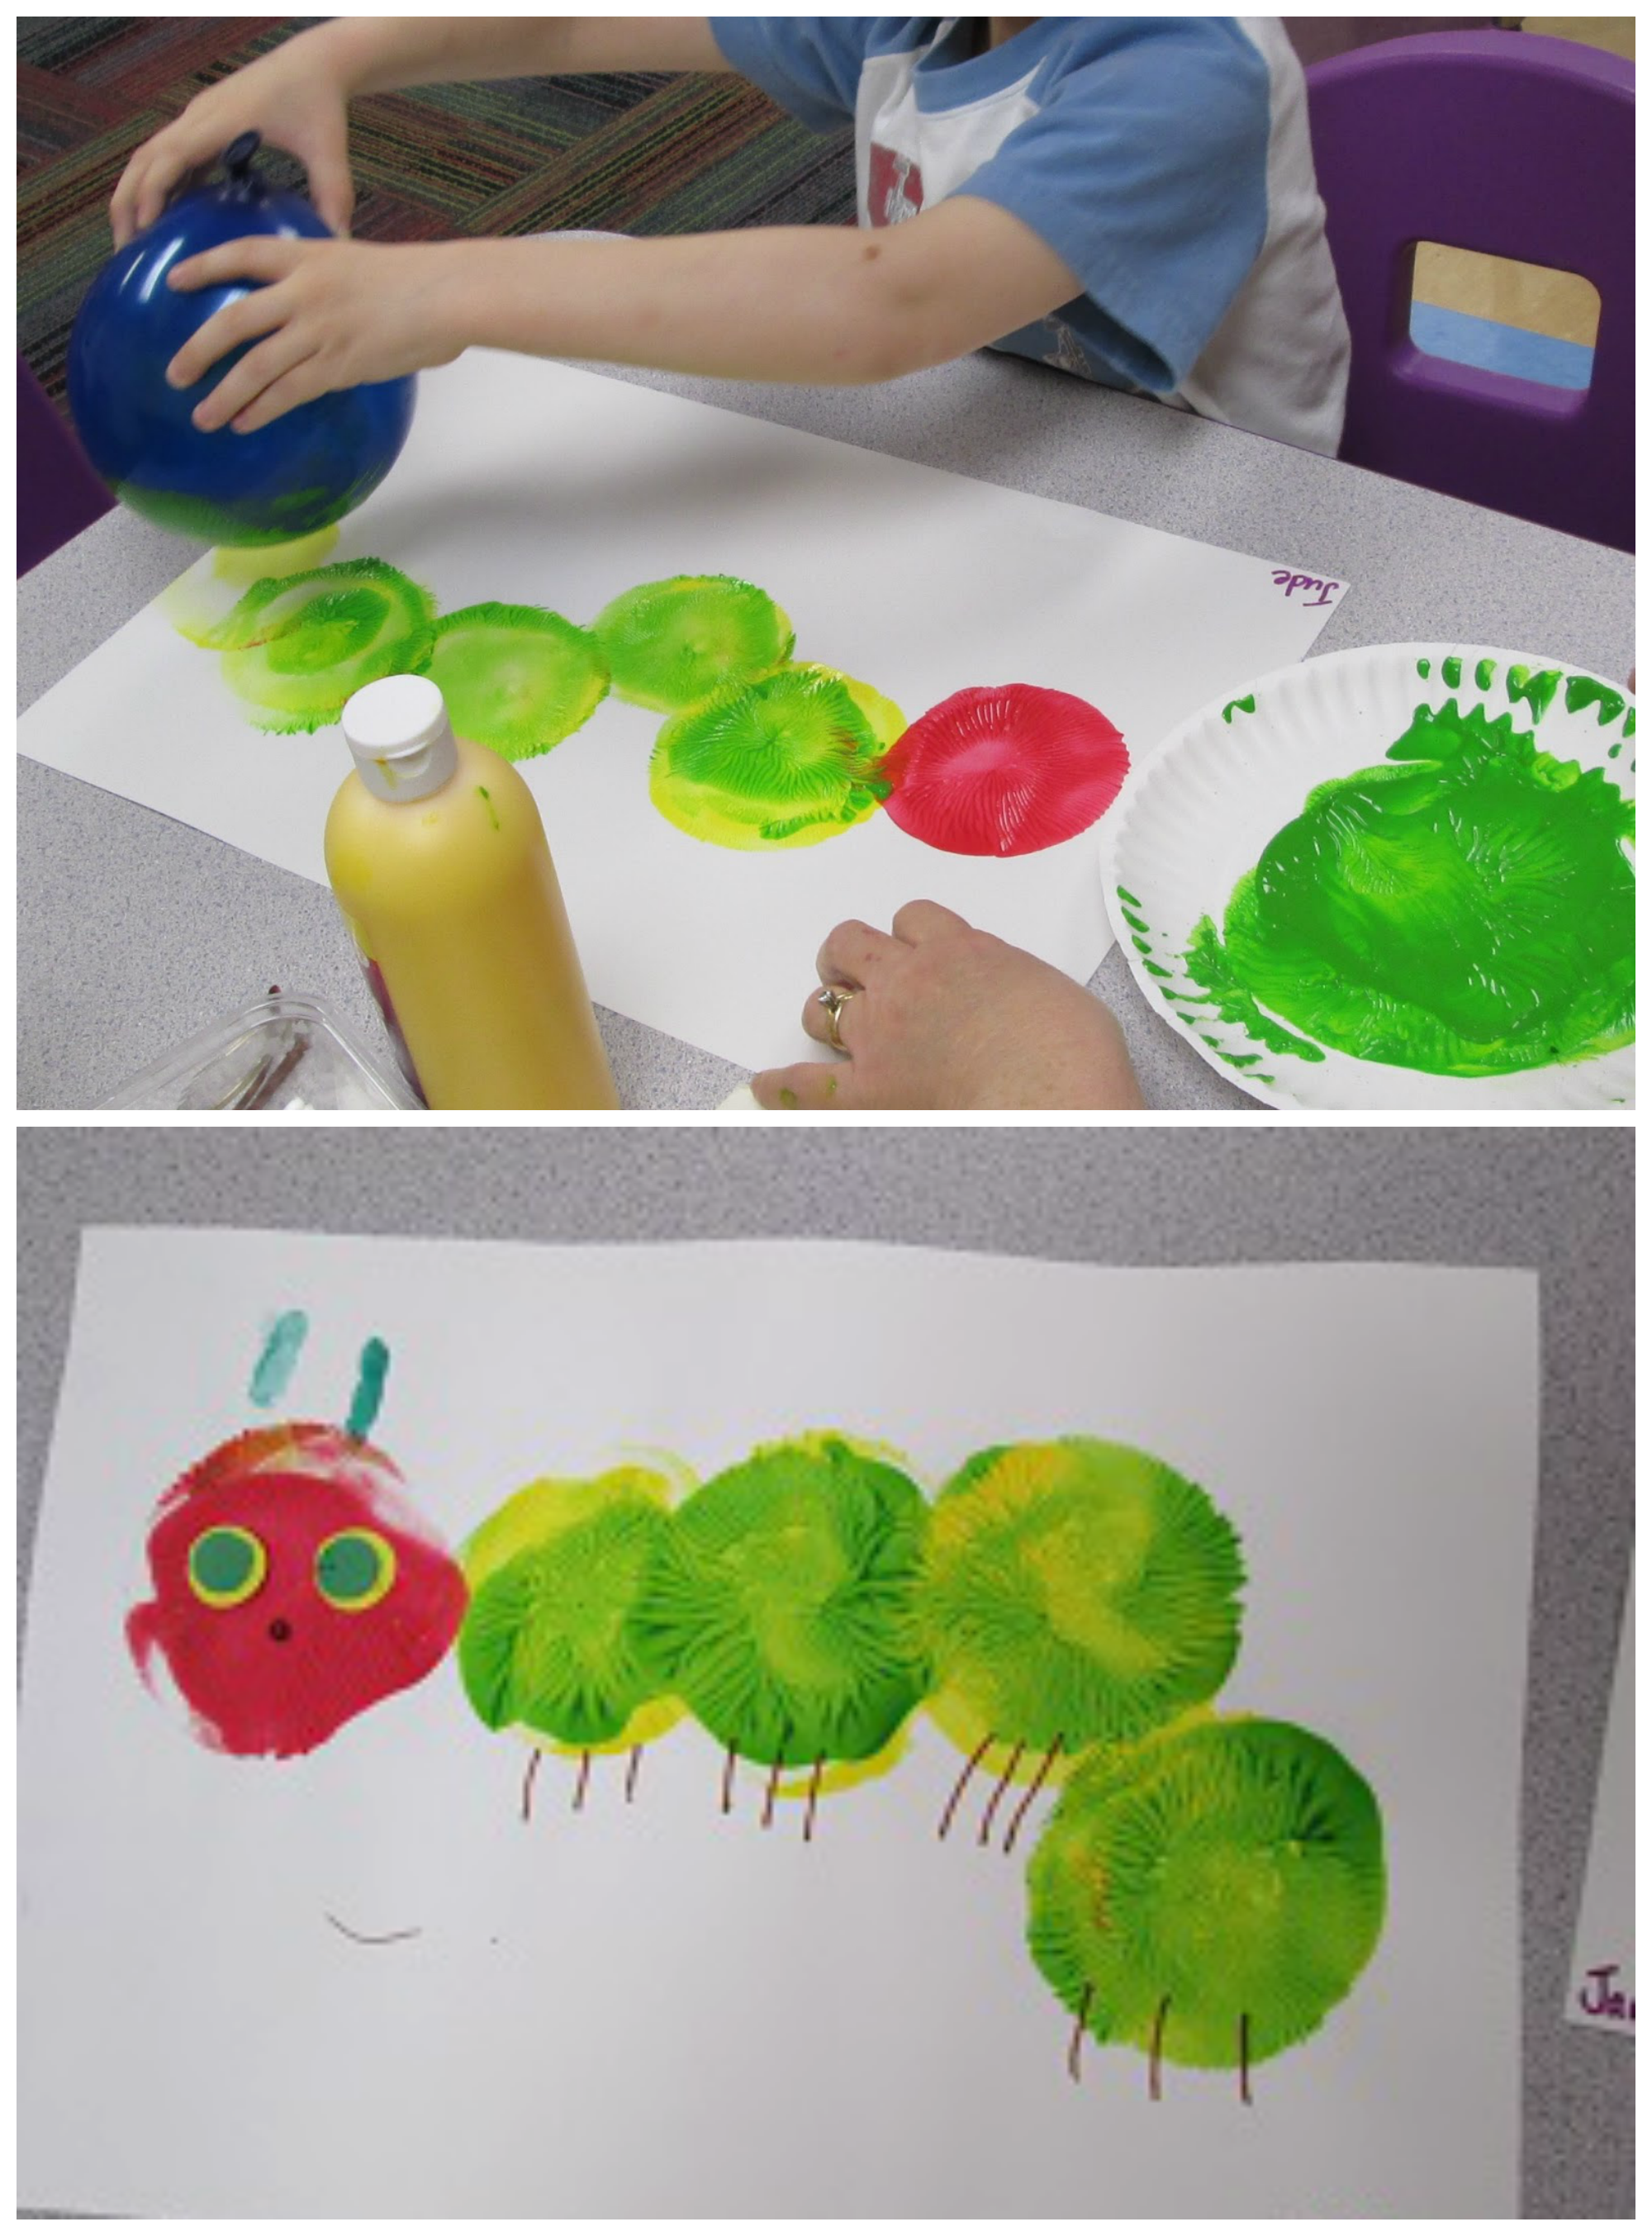 Balloon painting hungry caterpillar craft for kids fun for Balloon ideas for kids